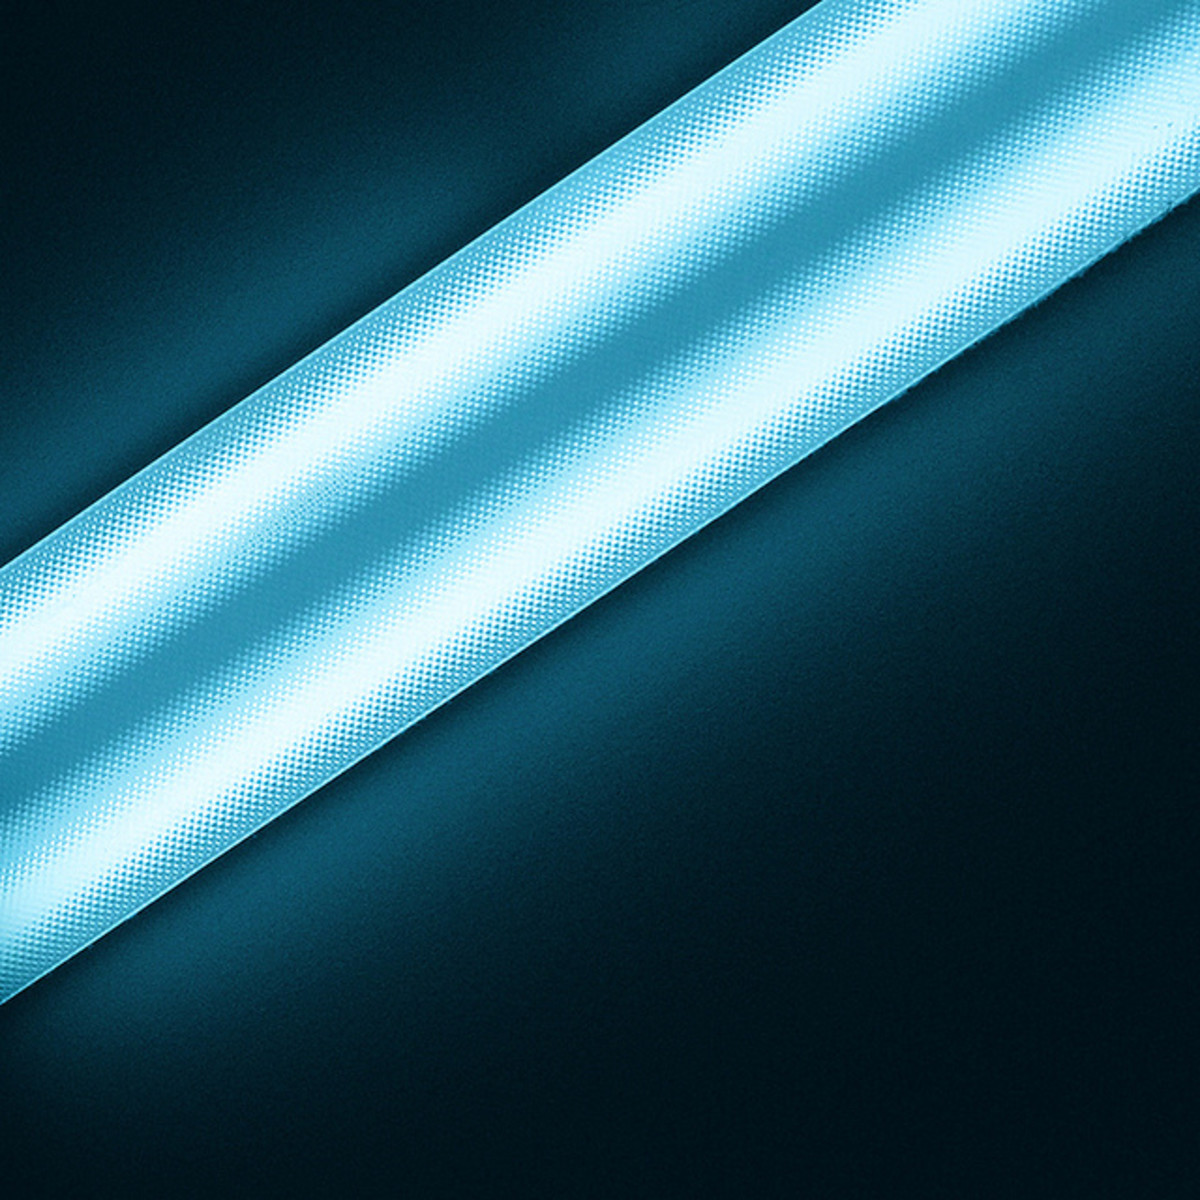 The blue light emitted by fluorescent lights can be particularly bothersome to migraine sufferers.